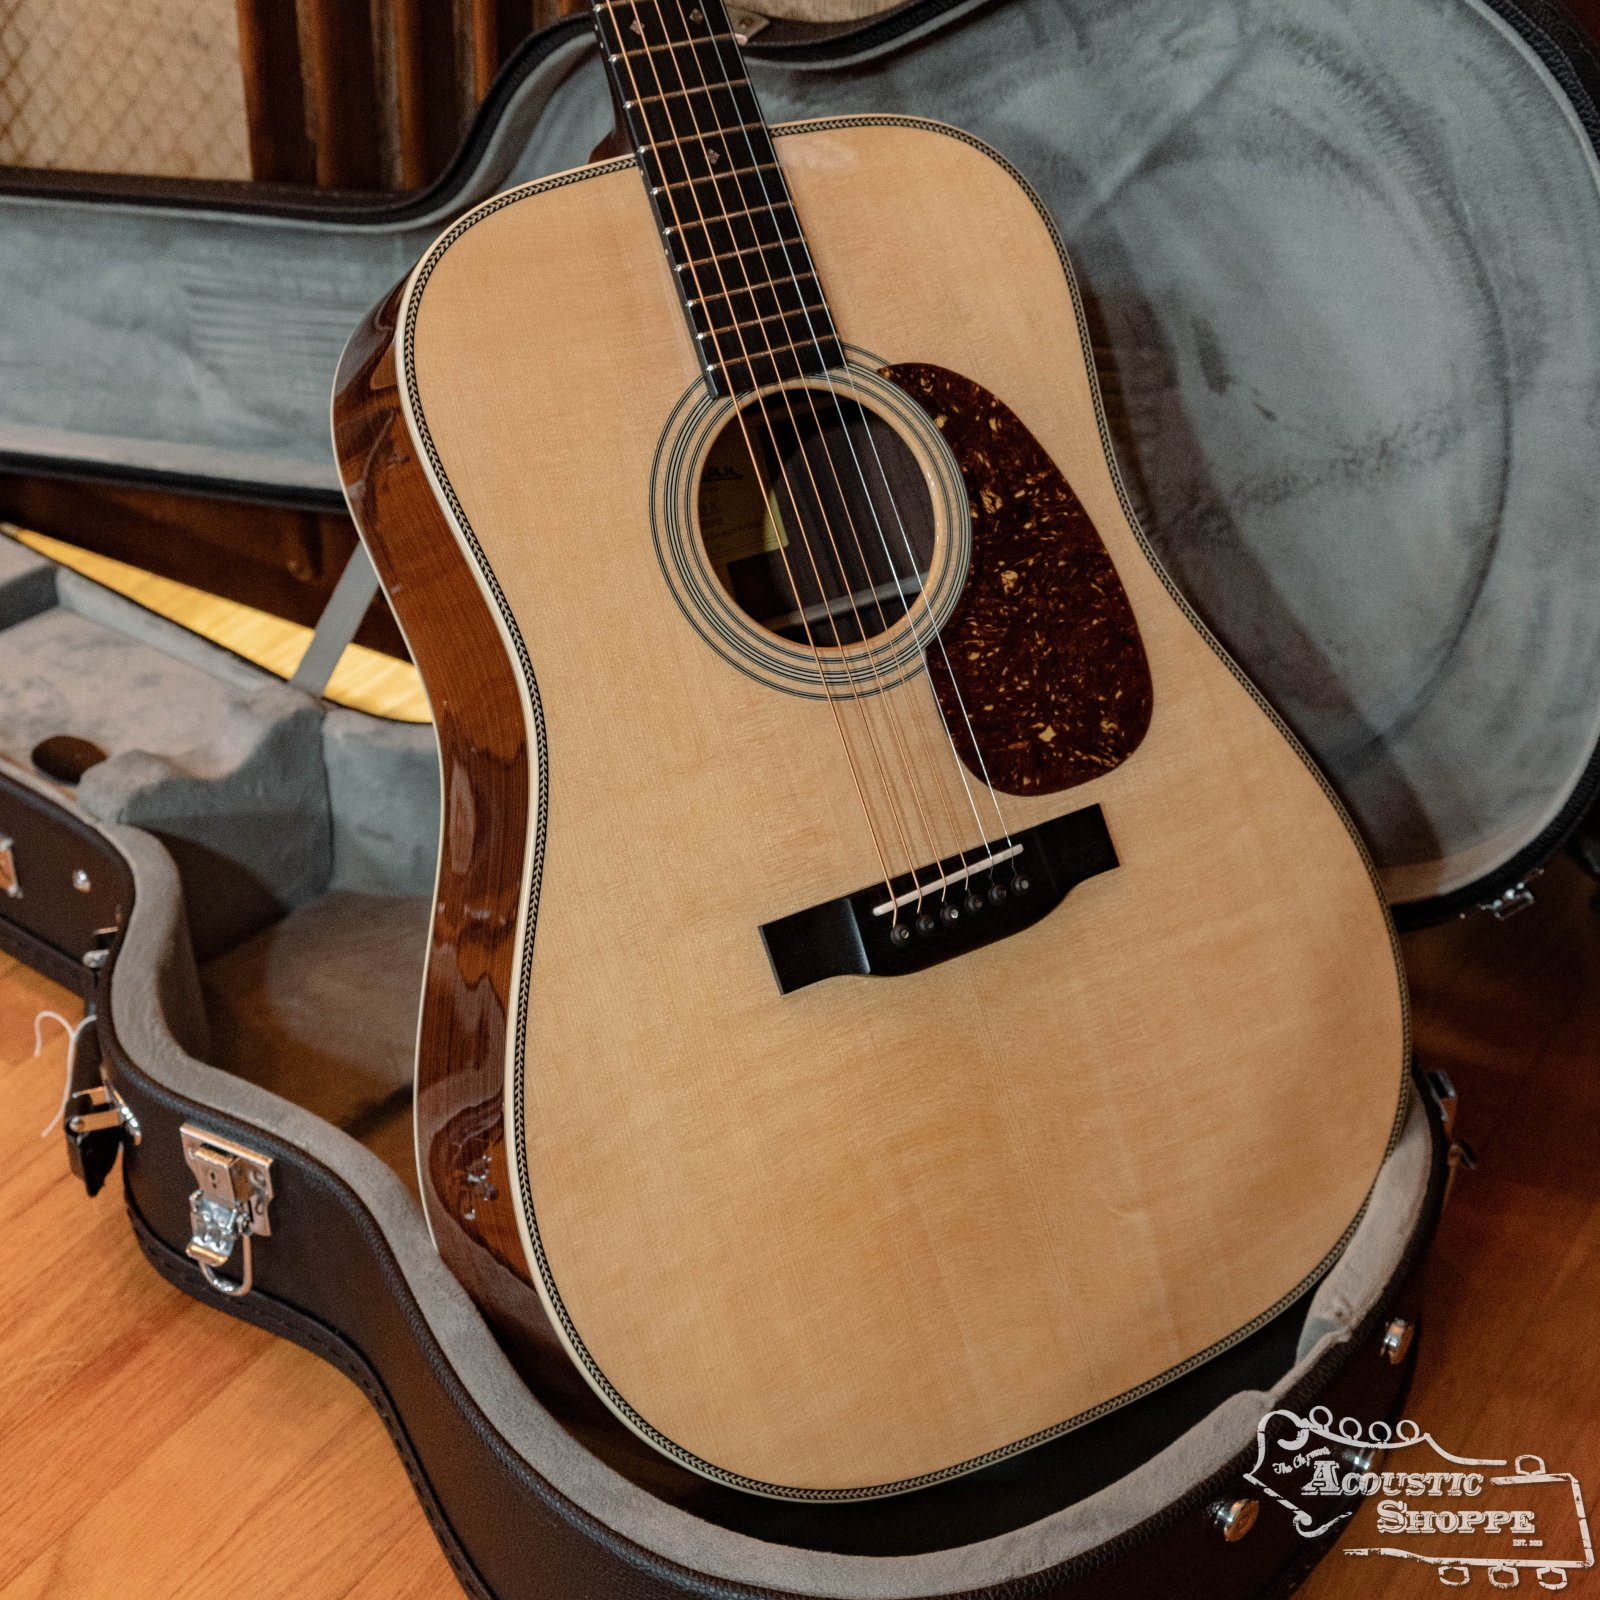 Eastman E8D-TC LIMITED Thermo Cured Alpine Spruce/Rosewood Dreadnought Acoustic Guitar #5435